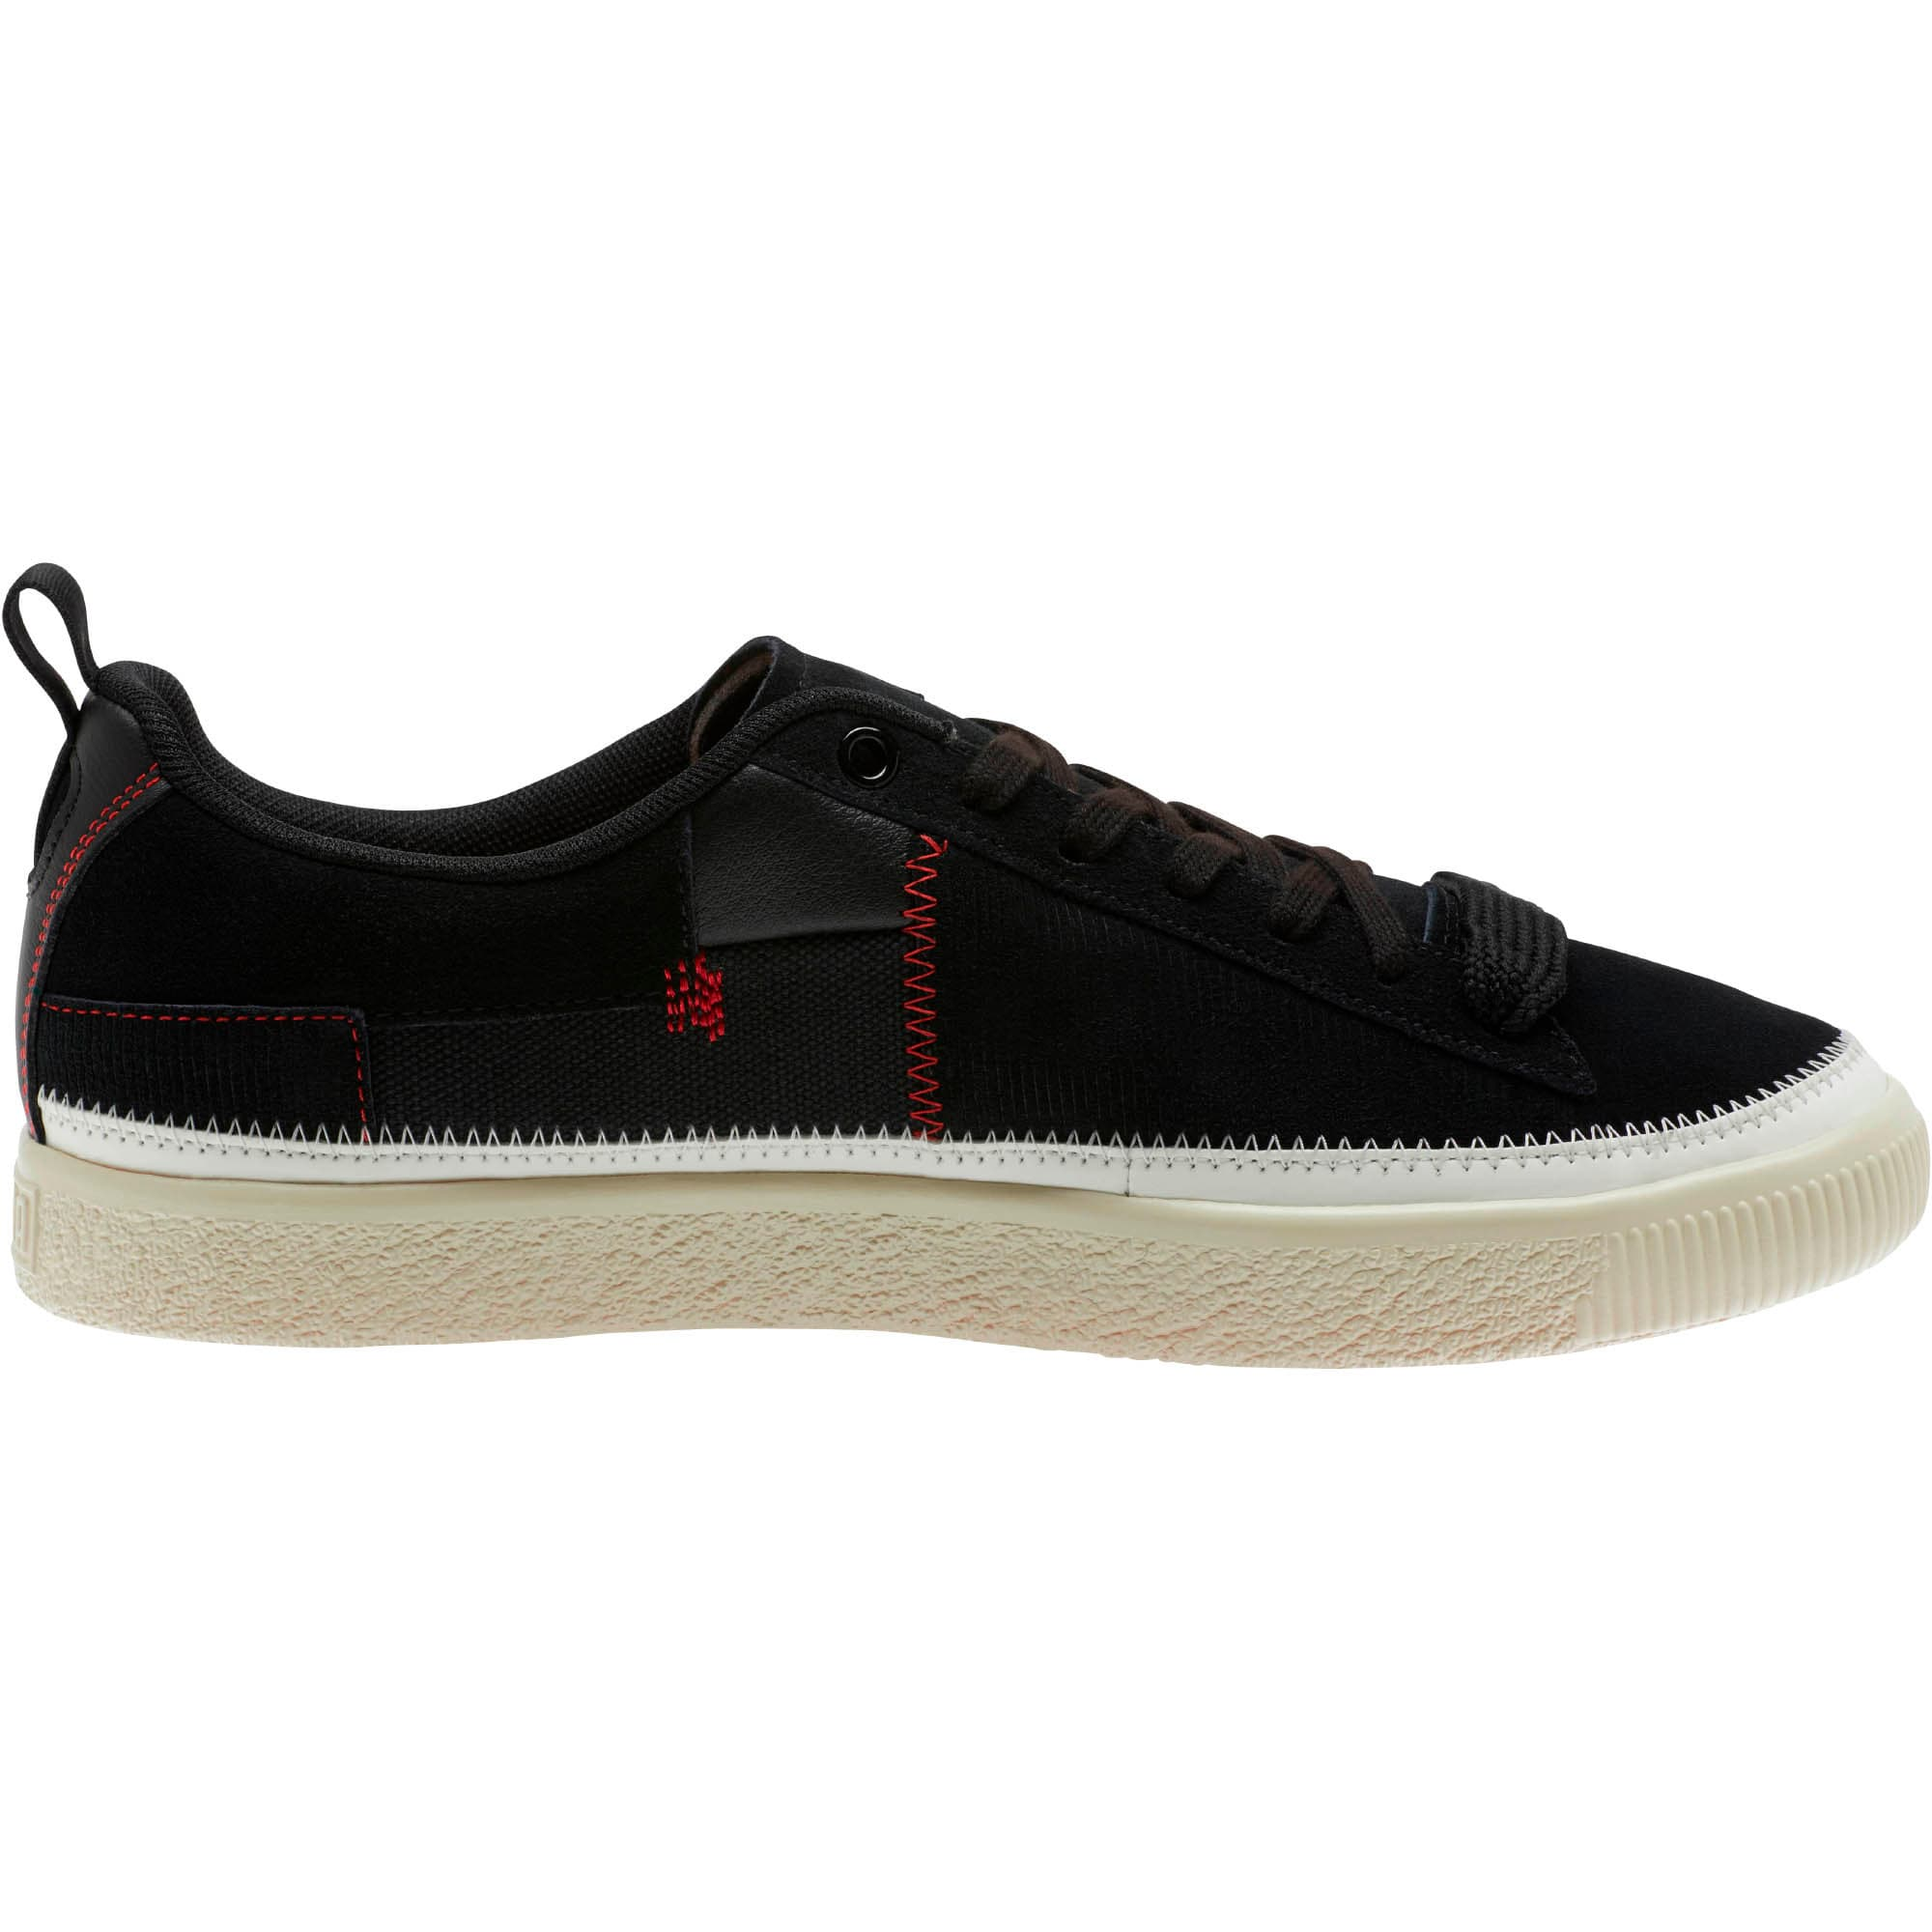 Thumbnail 4 of Clyde #REFORM Sneakers, Black-Whisper White- Red, medium